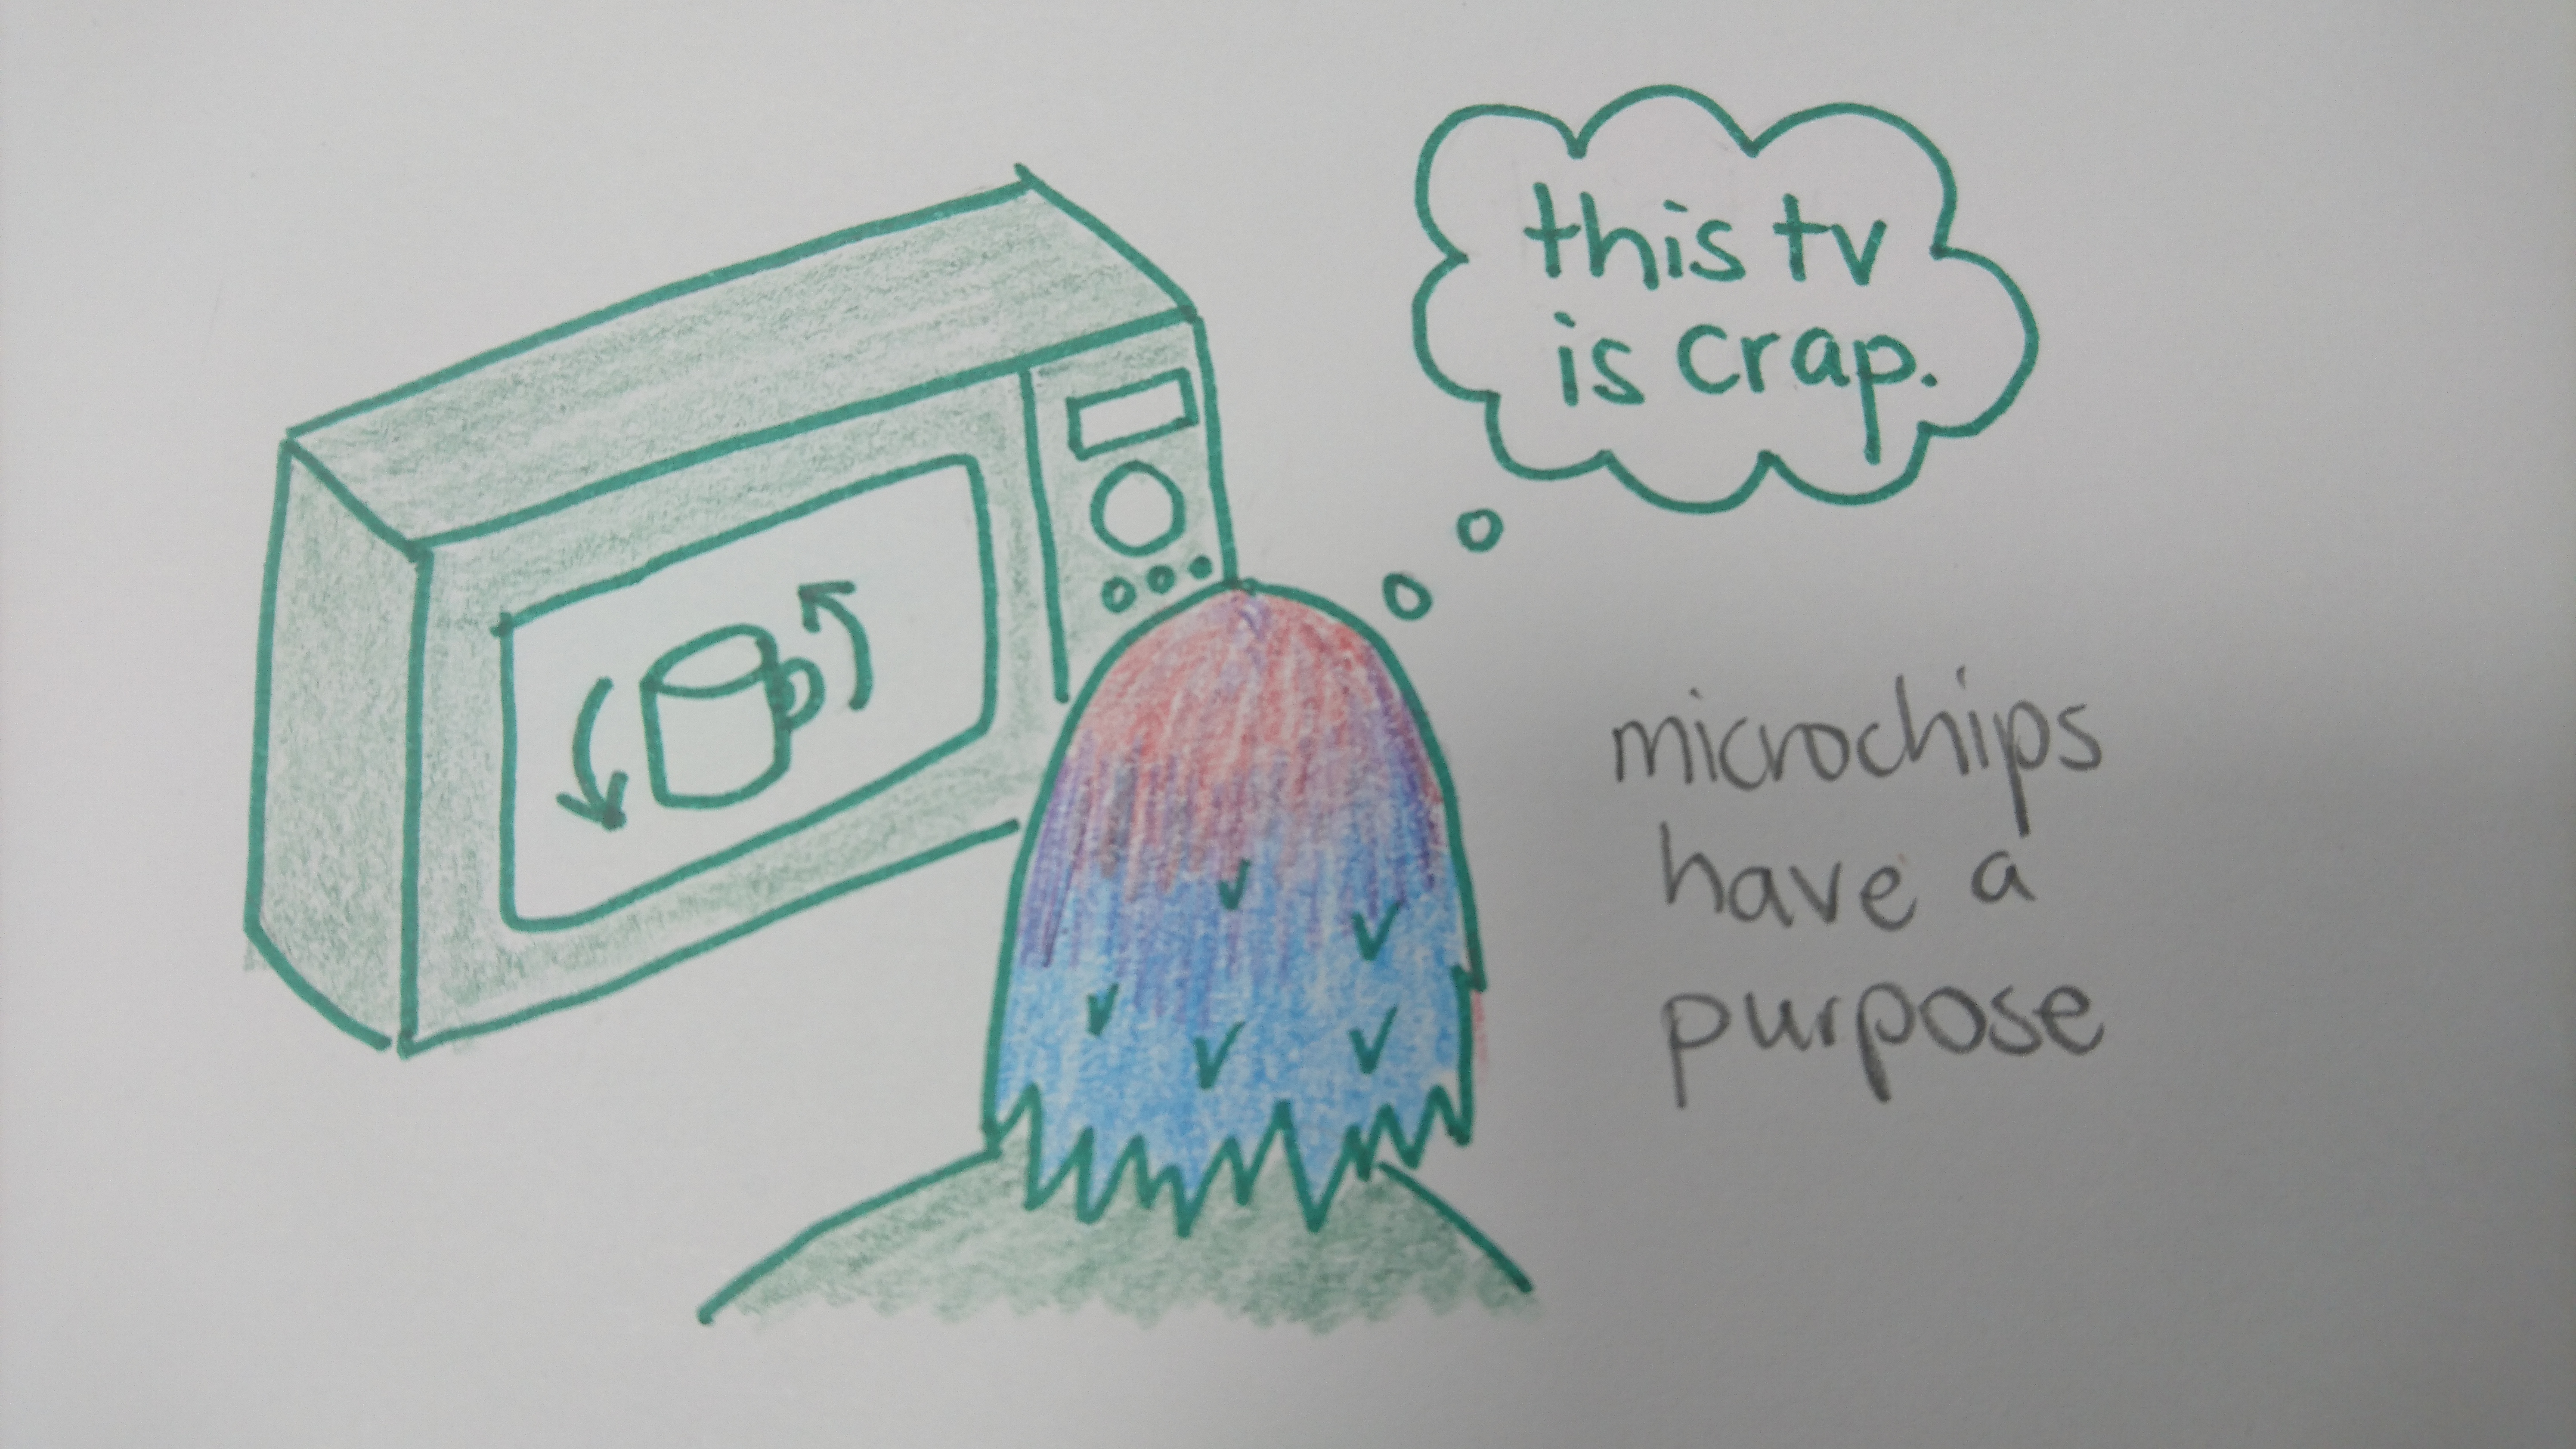 watching the microwave tv